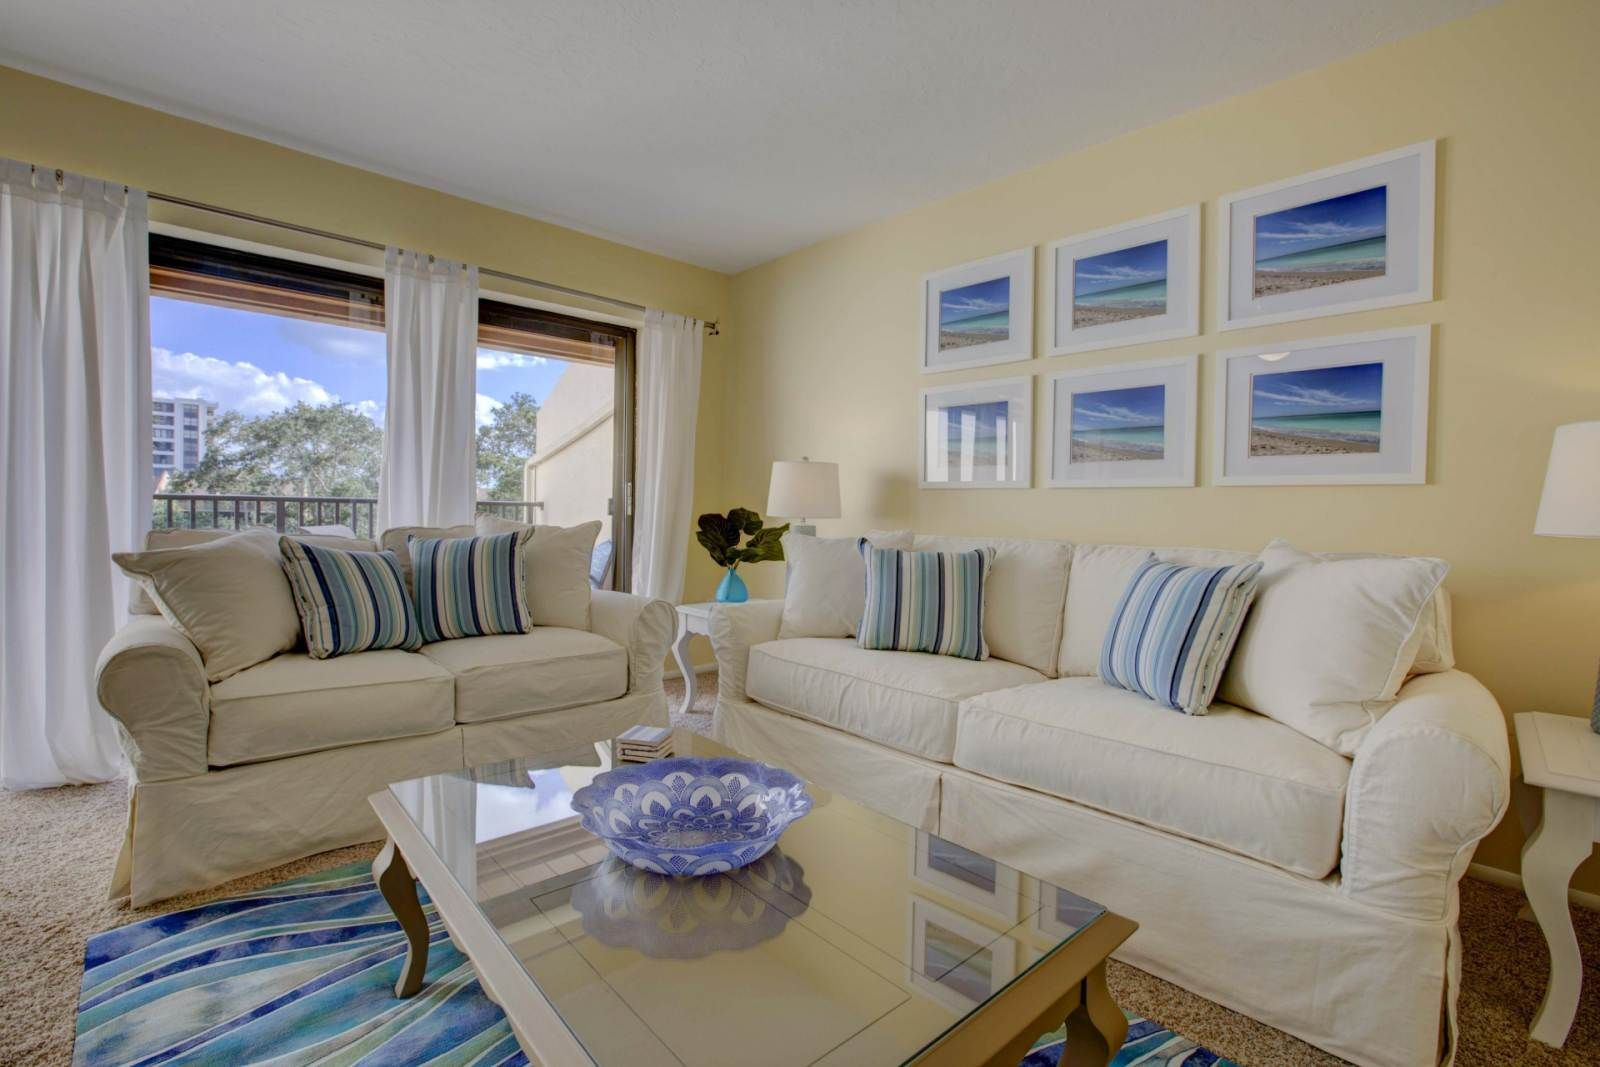 Beaches of sarasota vacation rental this 2bd home has